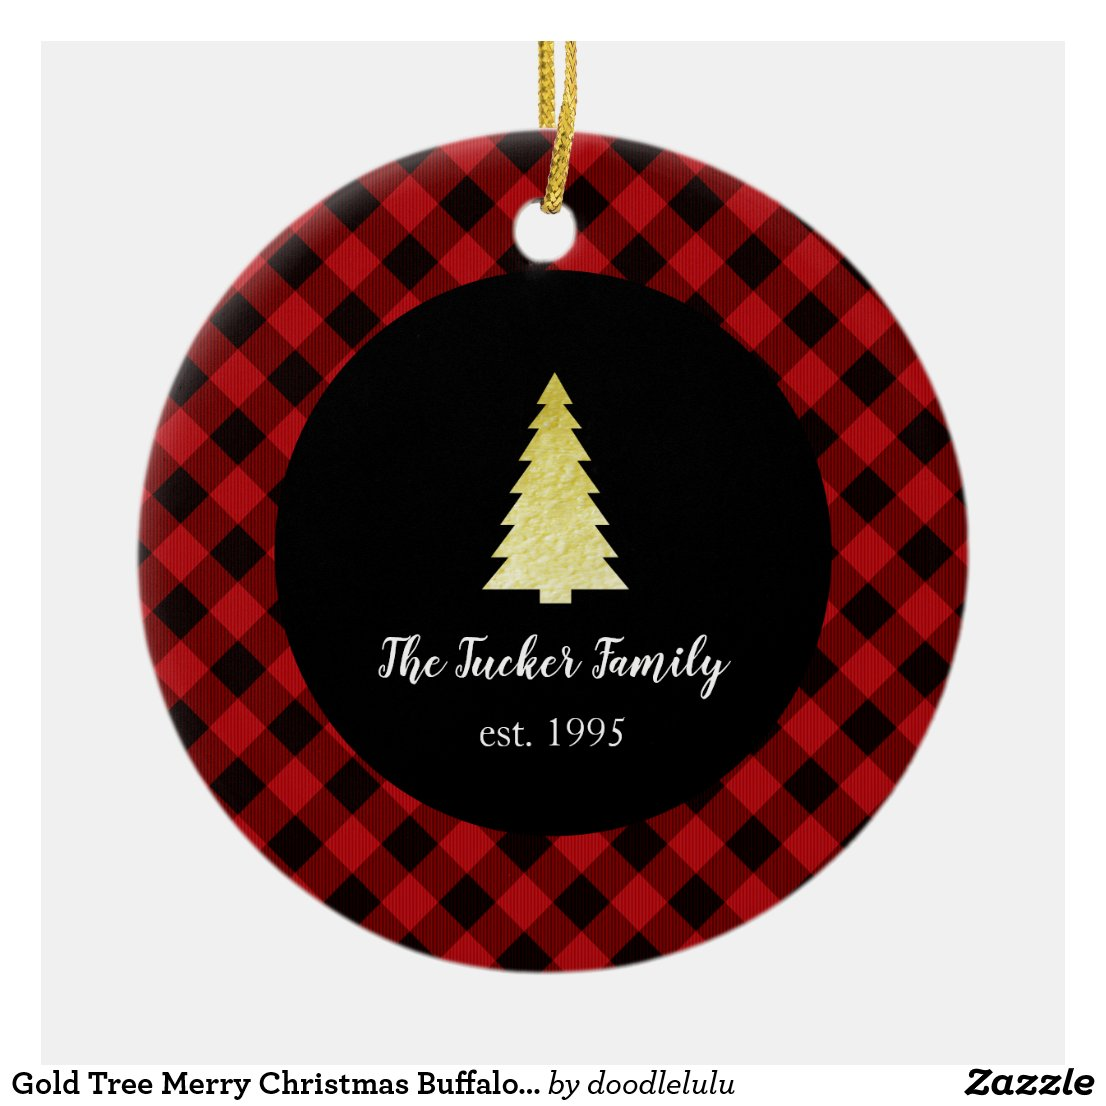 Gold Tree Merry Christmas Buffalo Plaid Ceramic Ornament